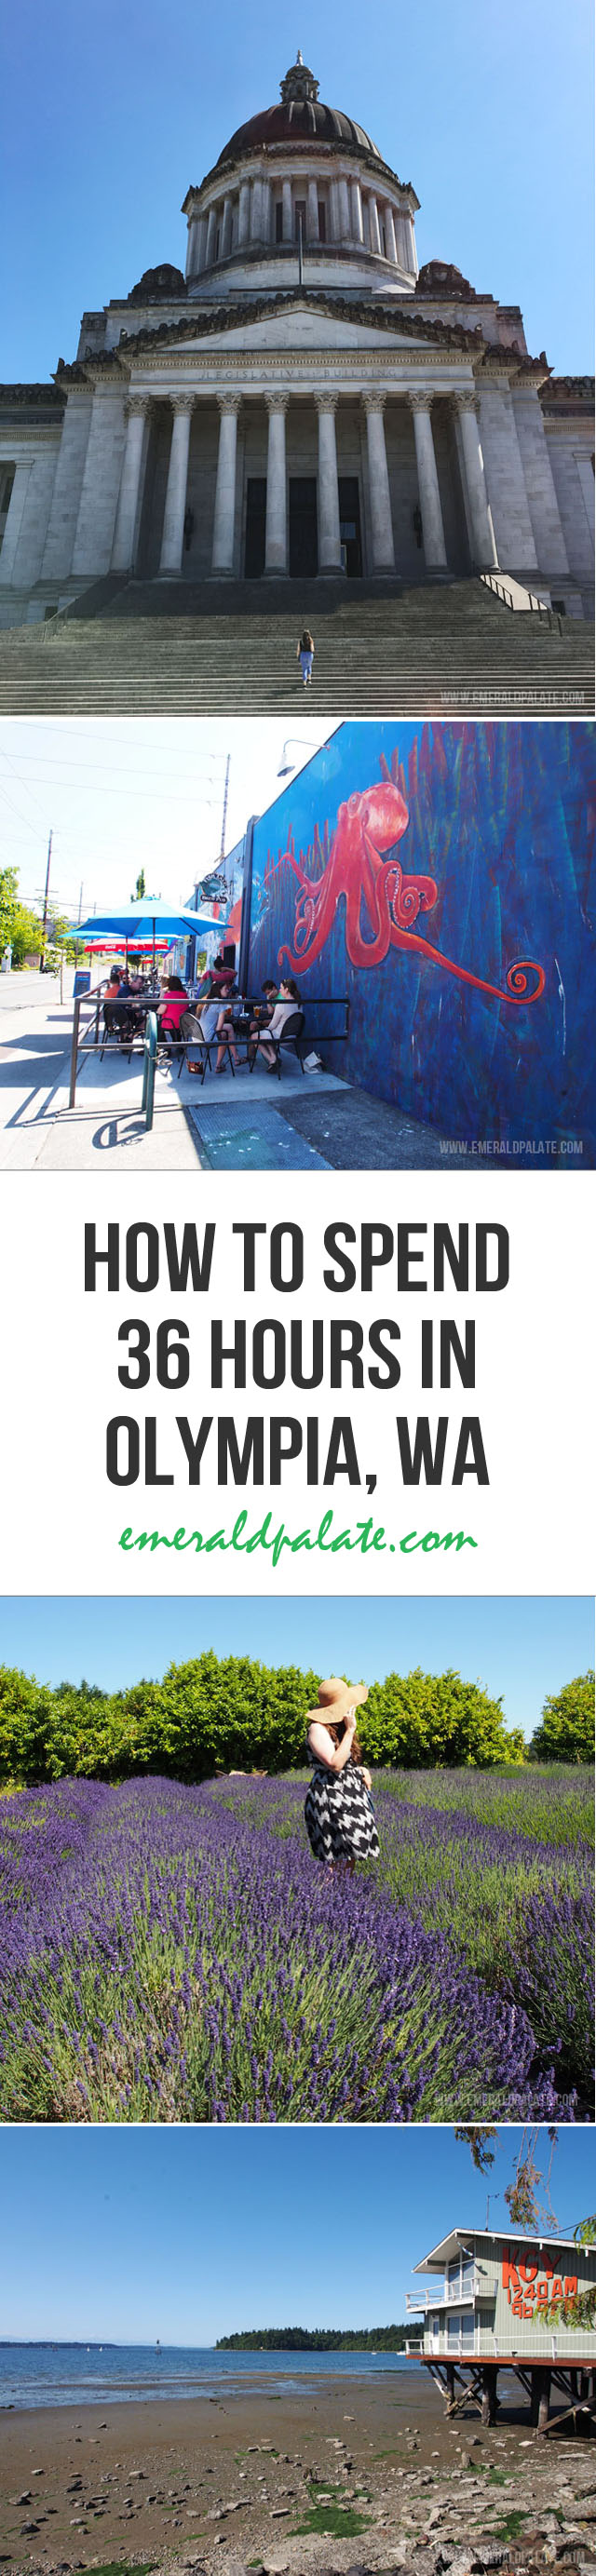 8 ideas for traveling to Olympia WA. It is more than just the Washington state capital. It is a biker friendly city that loves beer, hiking, and local farms.